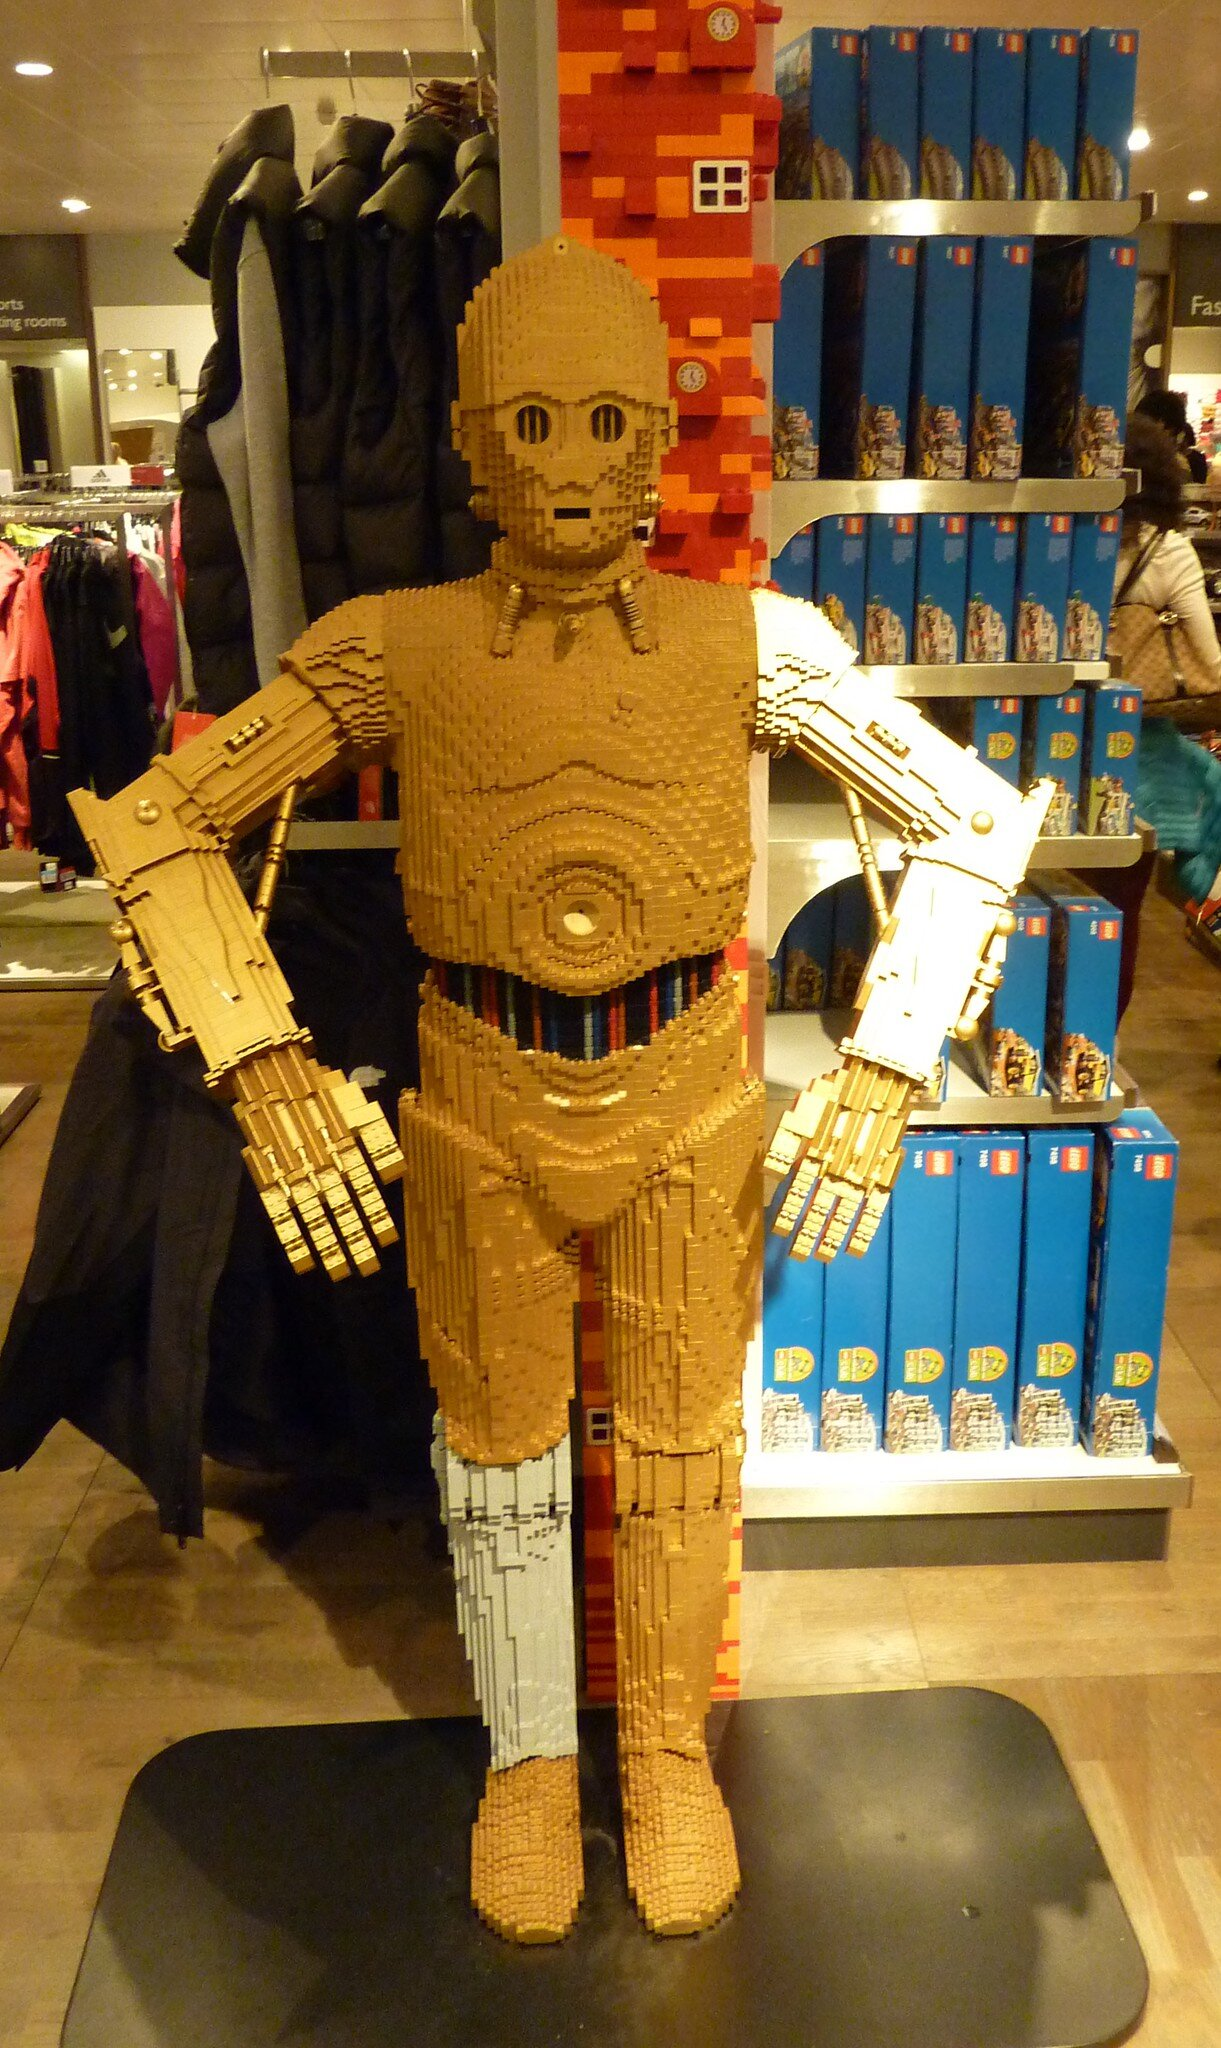 Robot made of Lego, at John Lewis, Photo by Terry Freedman